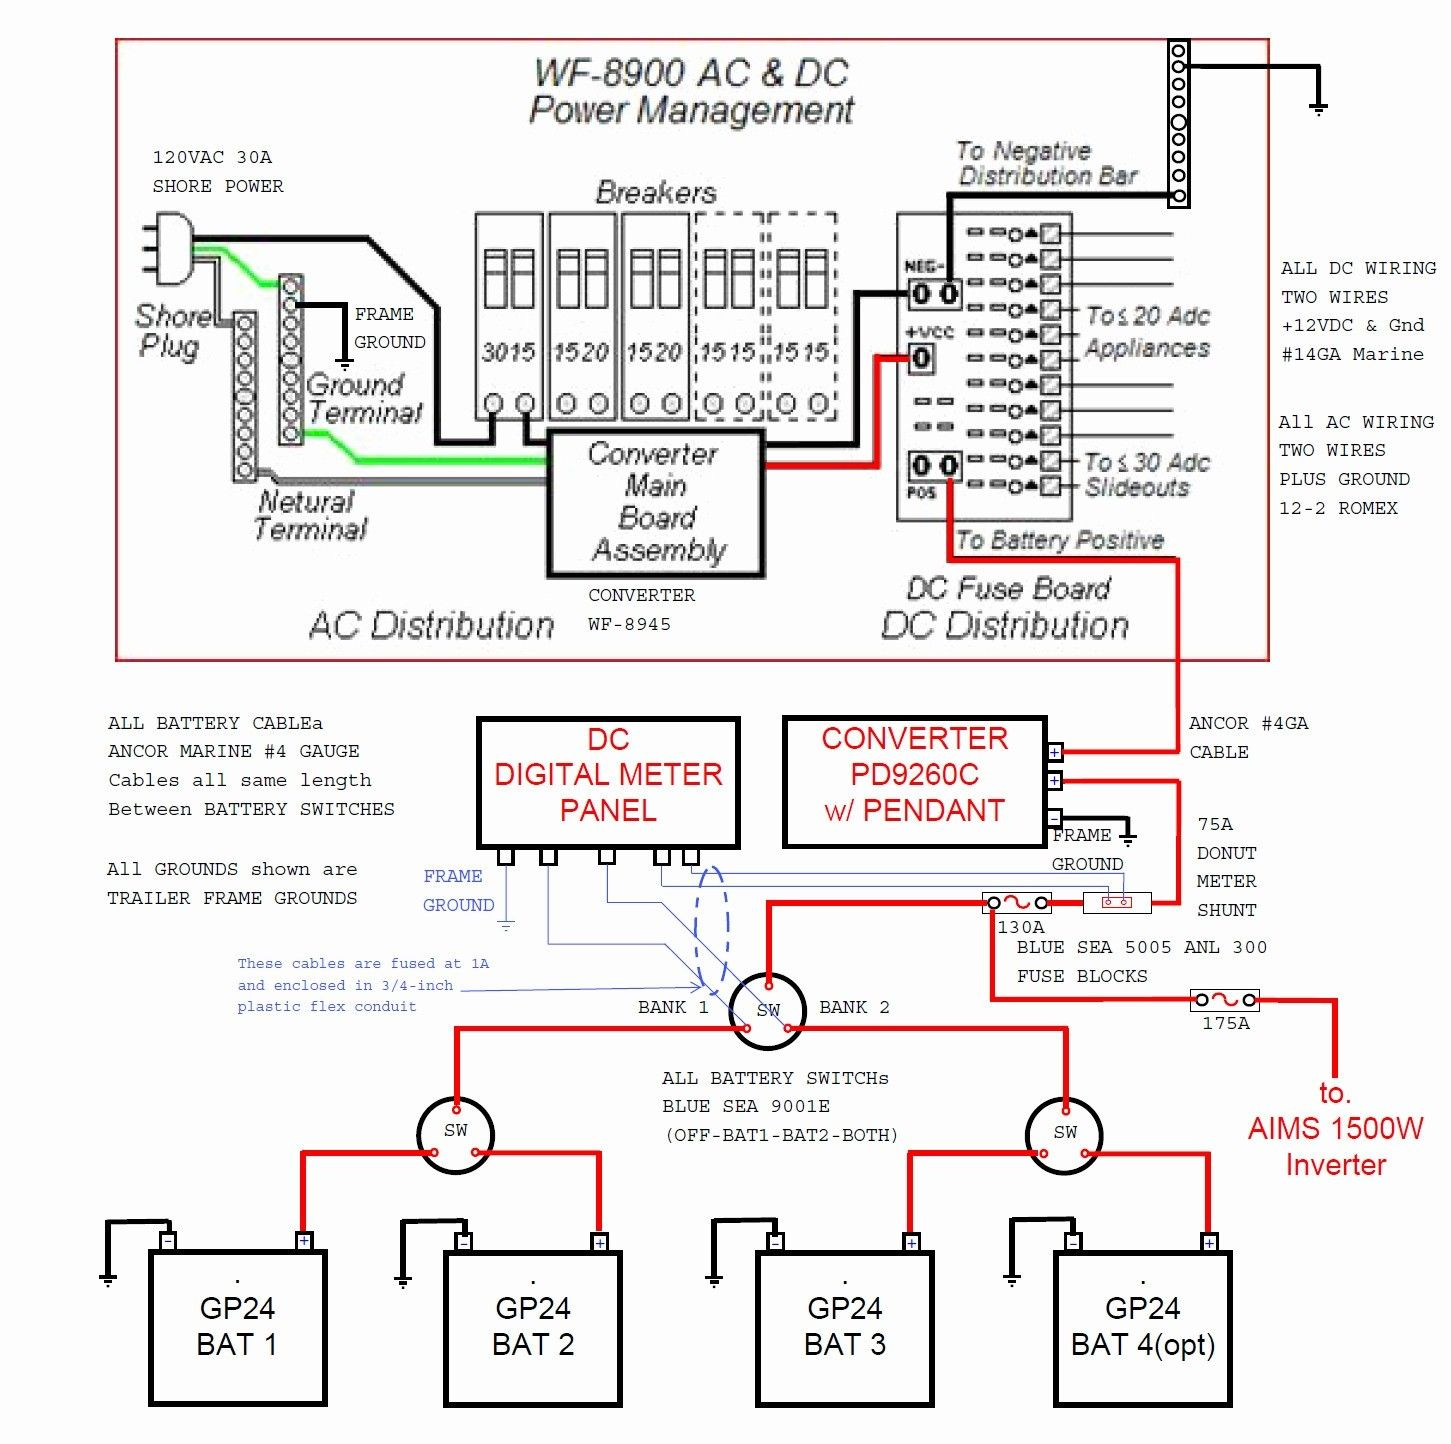 50 Amp Rv Outlet Wiring Diagram In 2020 Trailer Wiring Diagram Electrical Wiring Diagram Wire